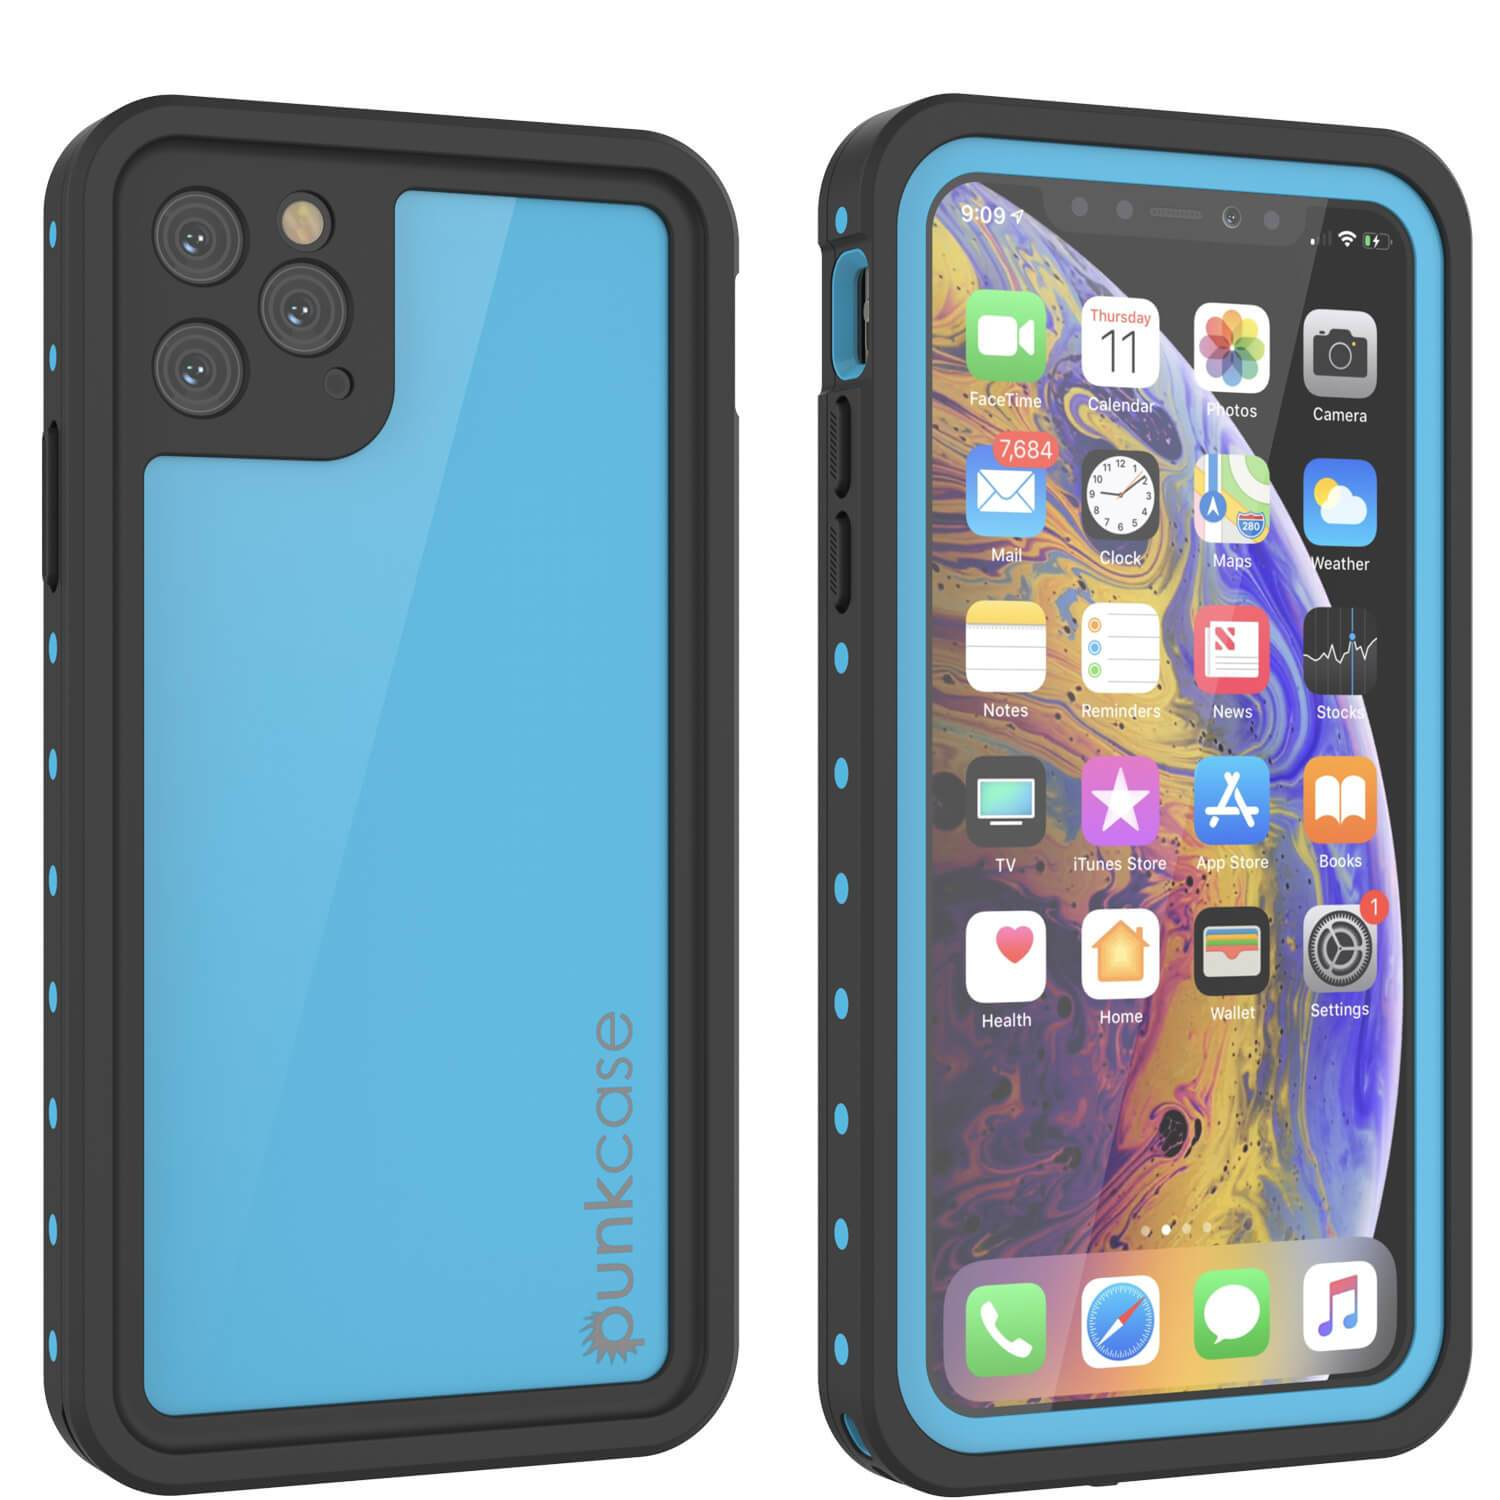 iPhone 11 Pro Waterproof IP68 Case, Punkcase [Light blue] [StudStar Series] [Slim Fit] [Dirtproof]